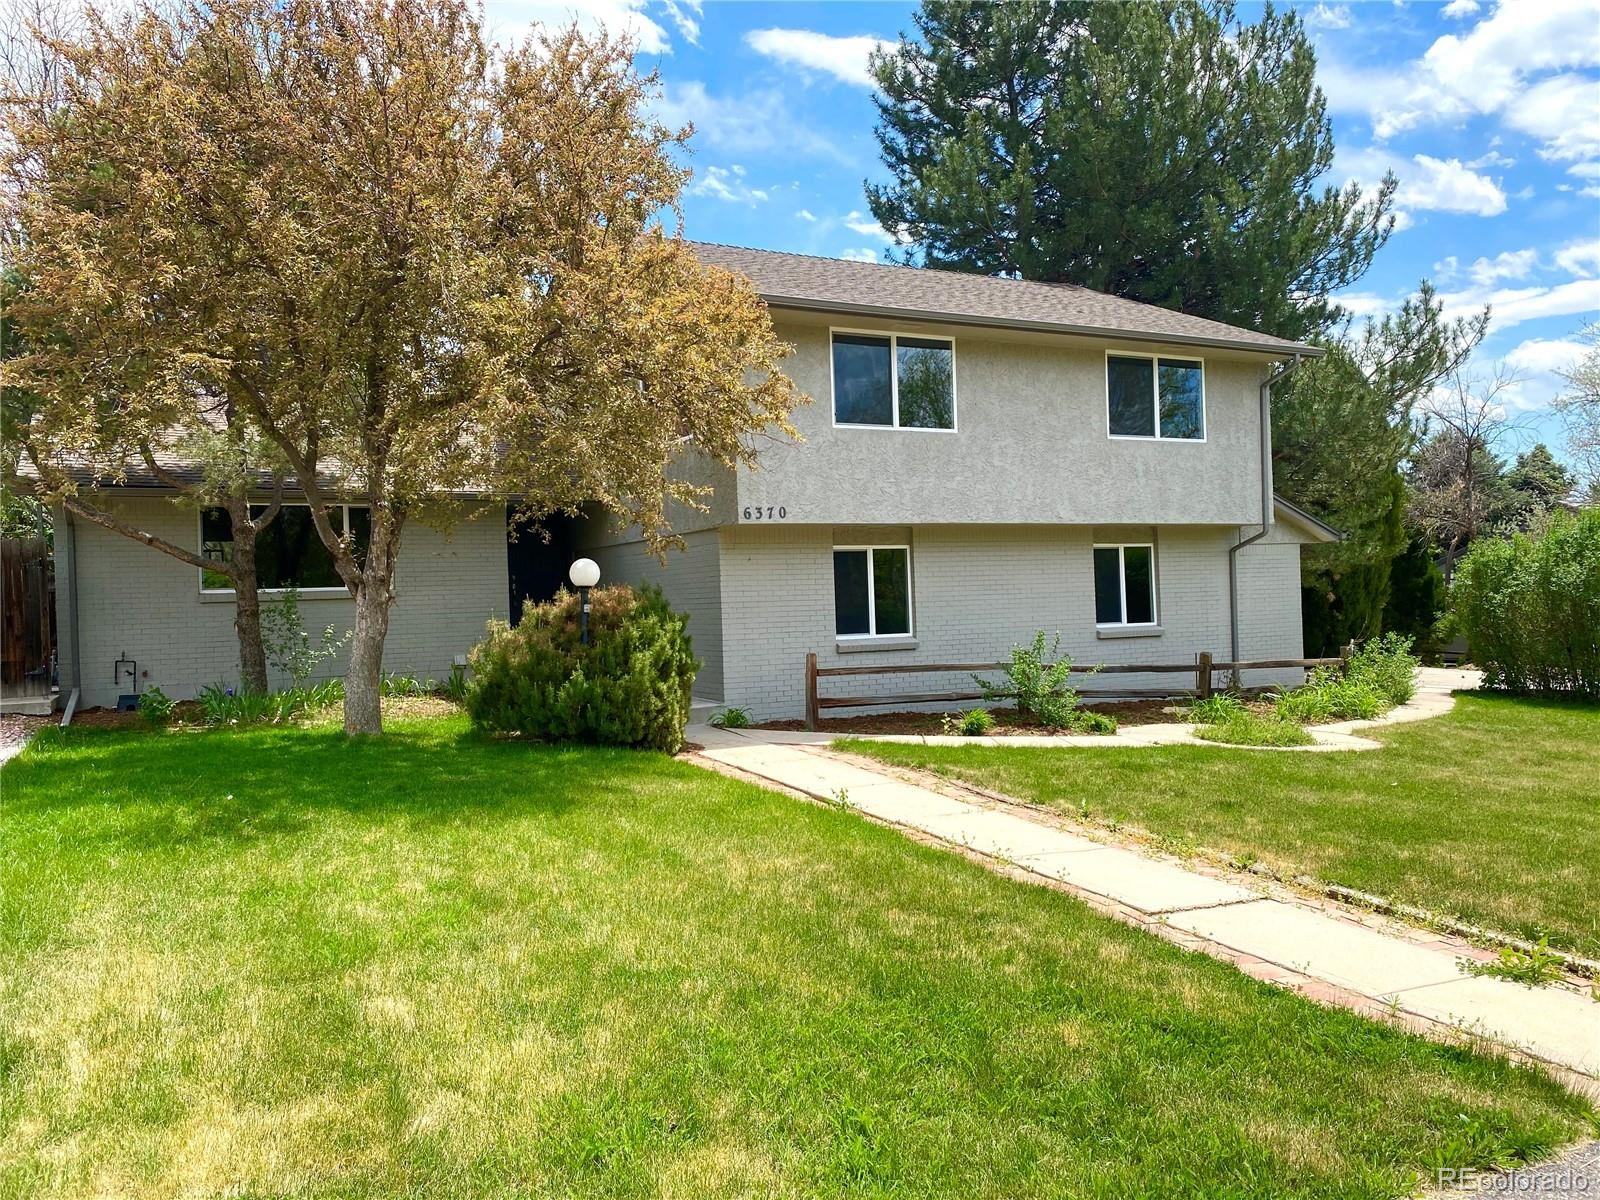 6370 S Ponds Way, Littleton, CO 80123 - #: 6725164